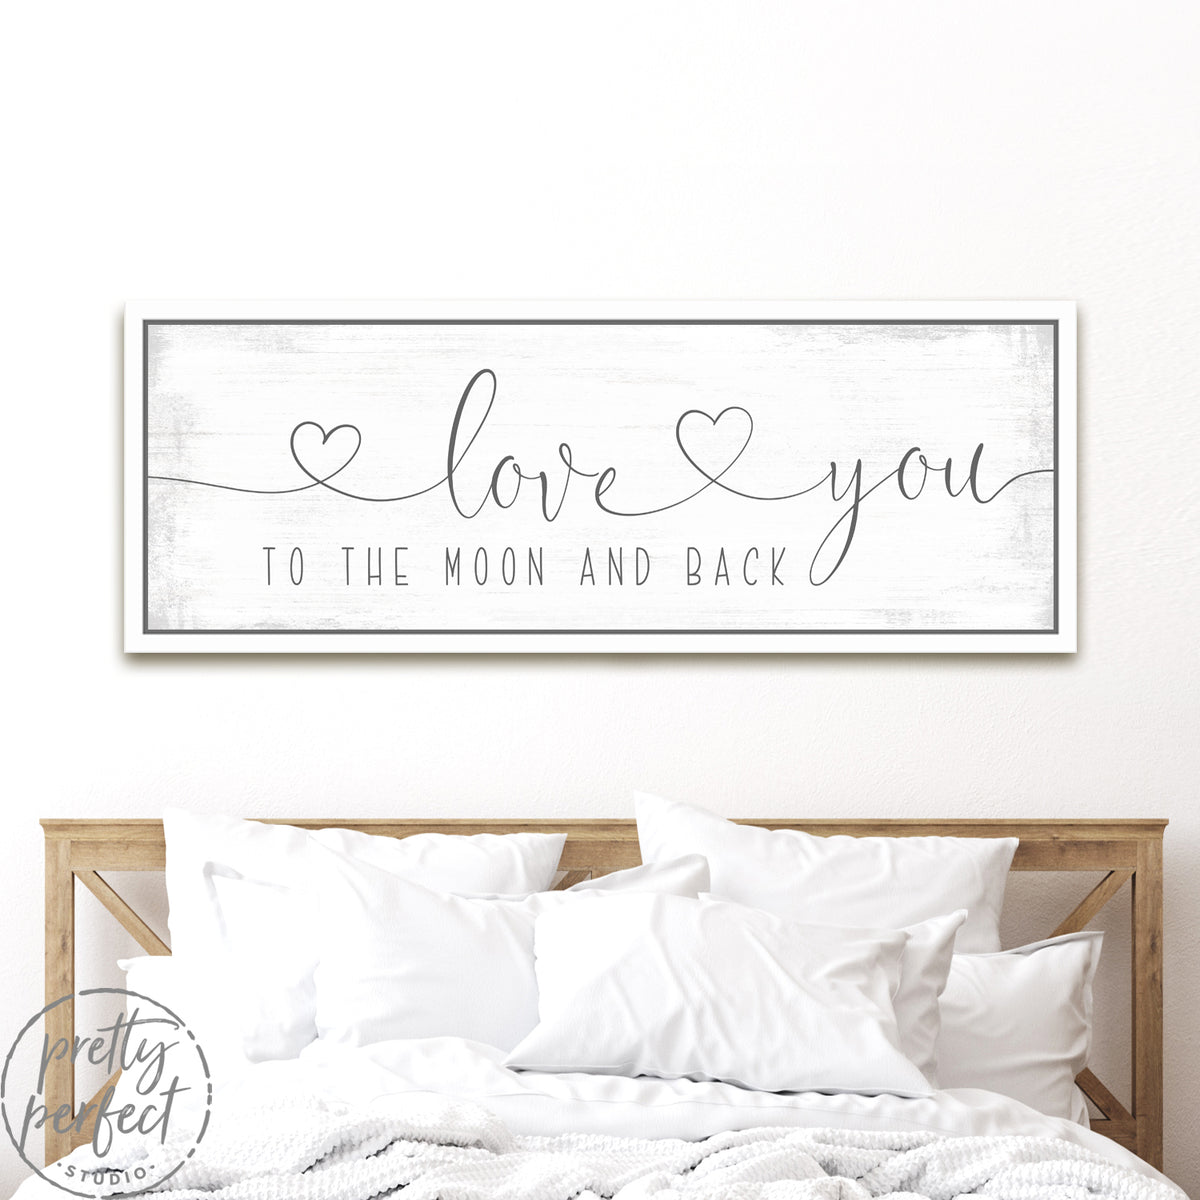 Love You to the Moon and Back Sign With Hearts Above Headboard - Pretty Perfect Studio